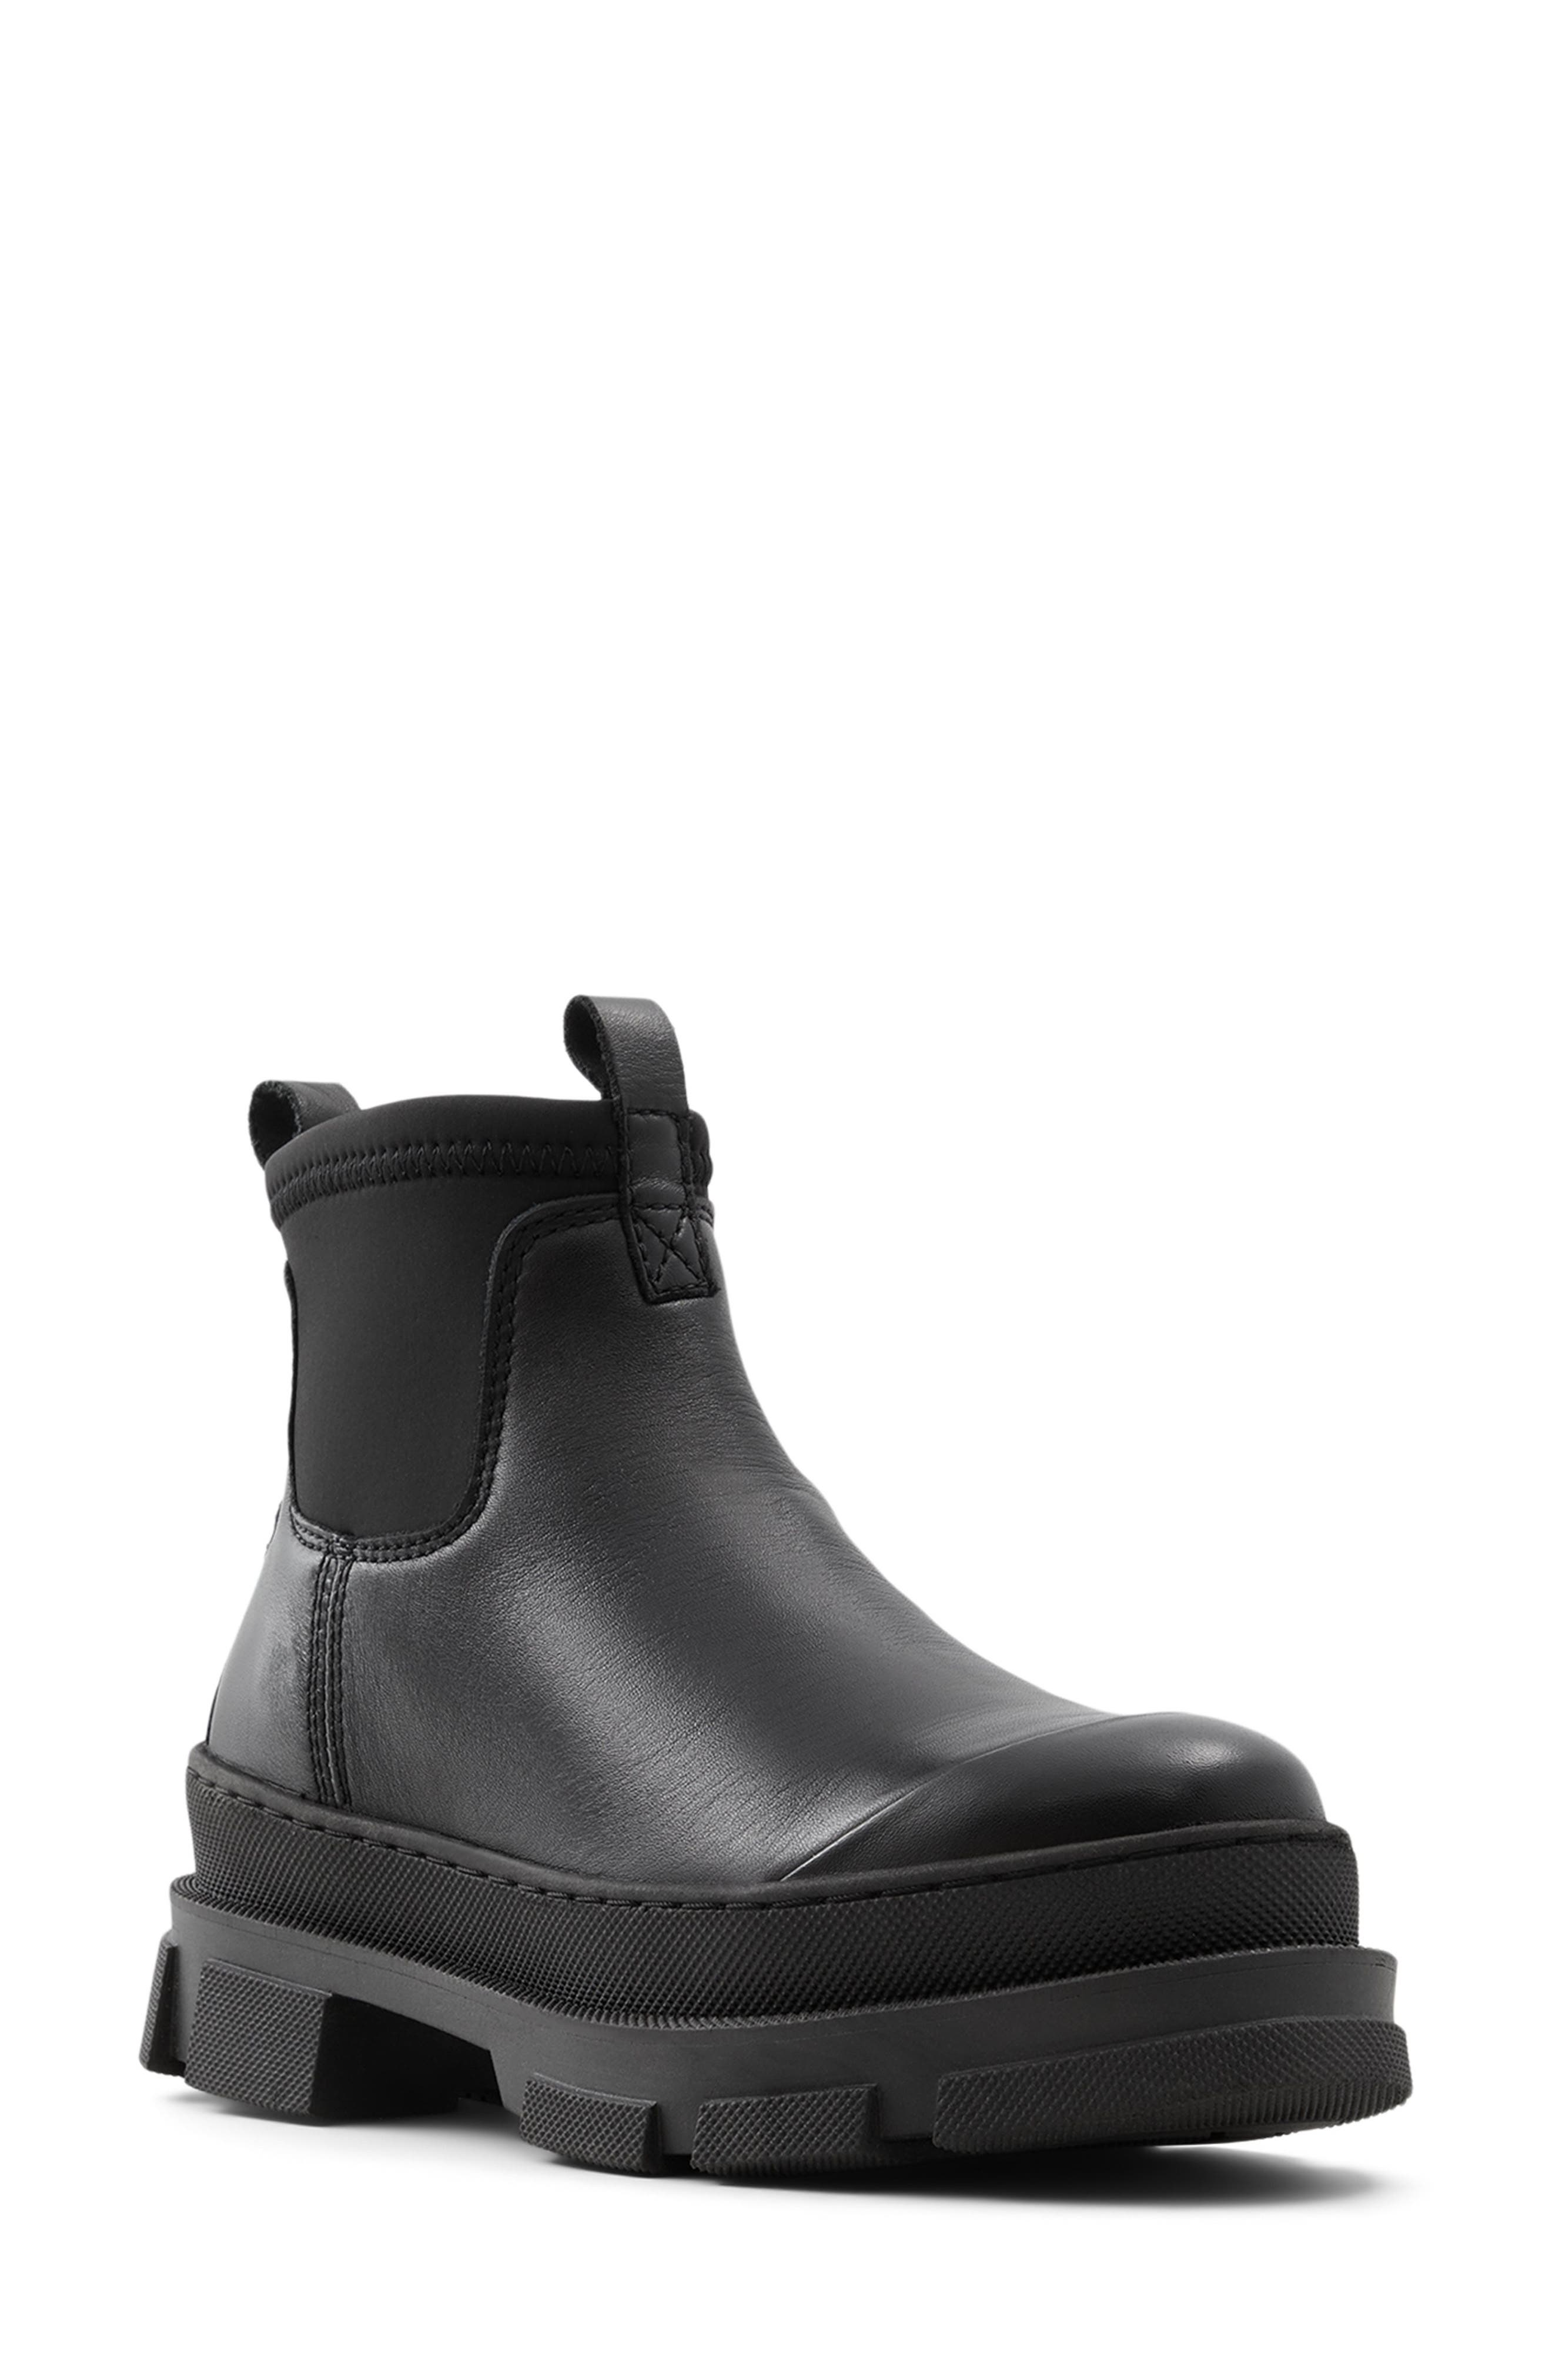 Puddle Waterproof Chelsea Boot